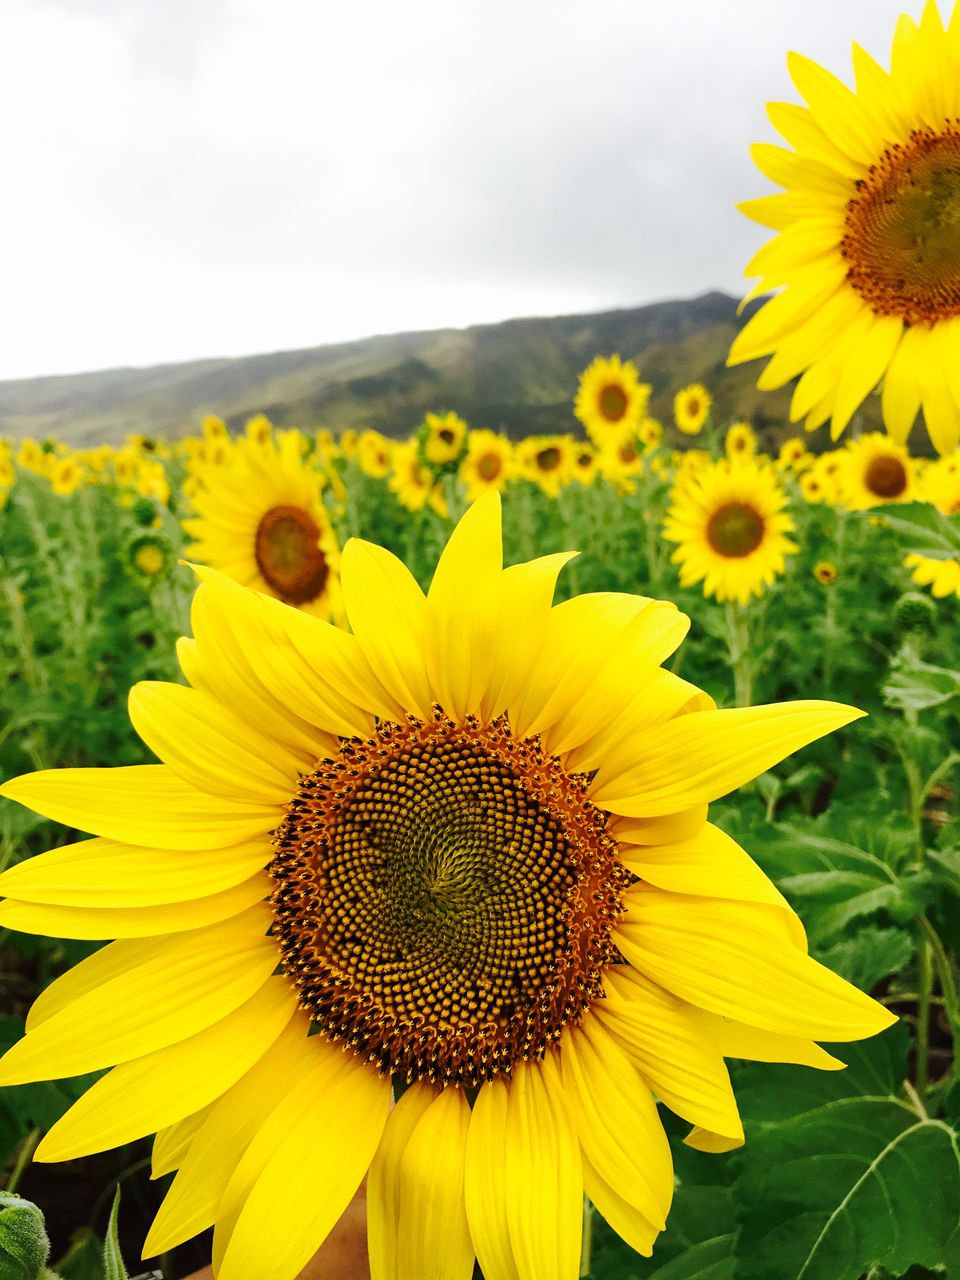 Close-Up Of Fresh Yellow Sunflower Blooming In Field Against Sky